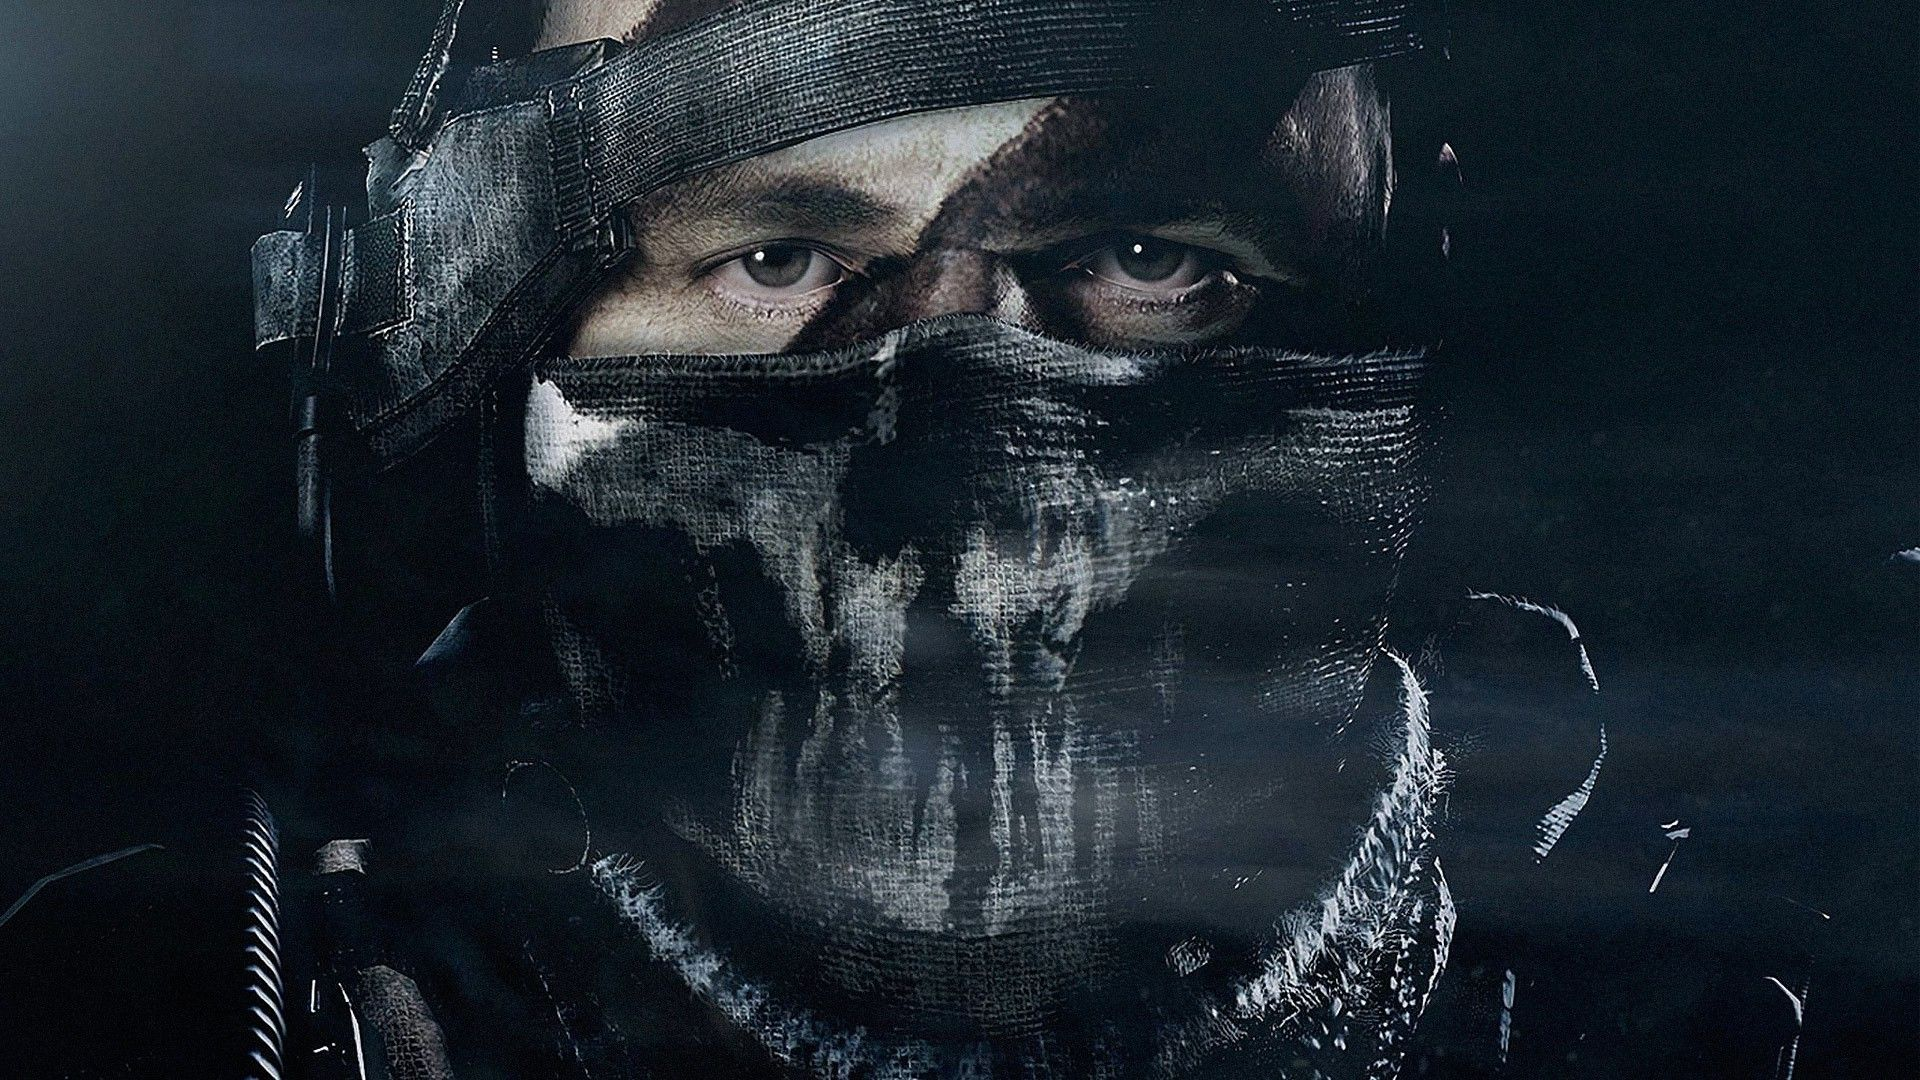 Call Of Duty Ghosts Wallpapers Wallpaper 1920 1280 Call Of Duty